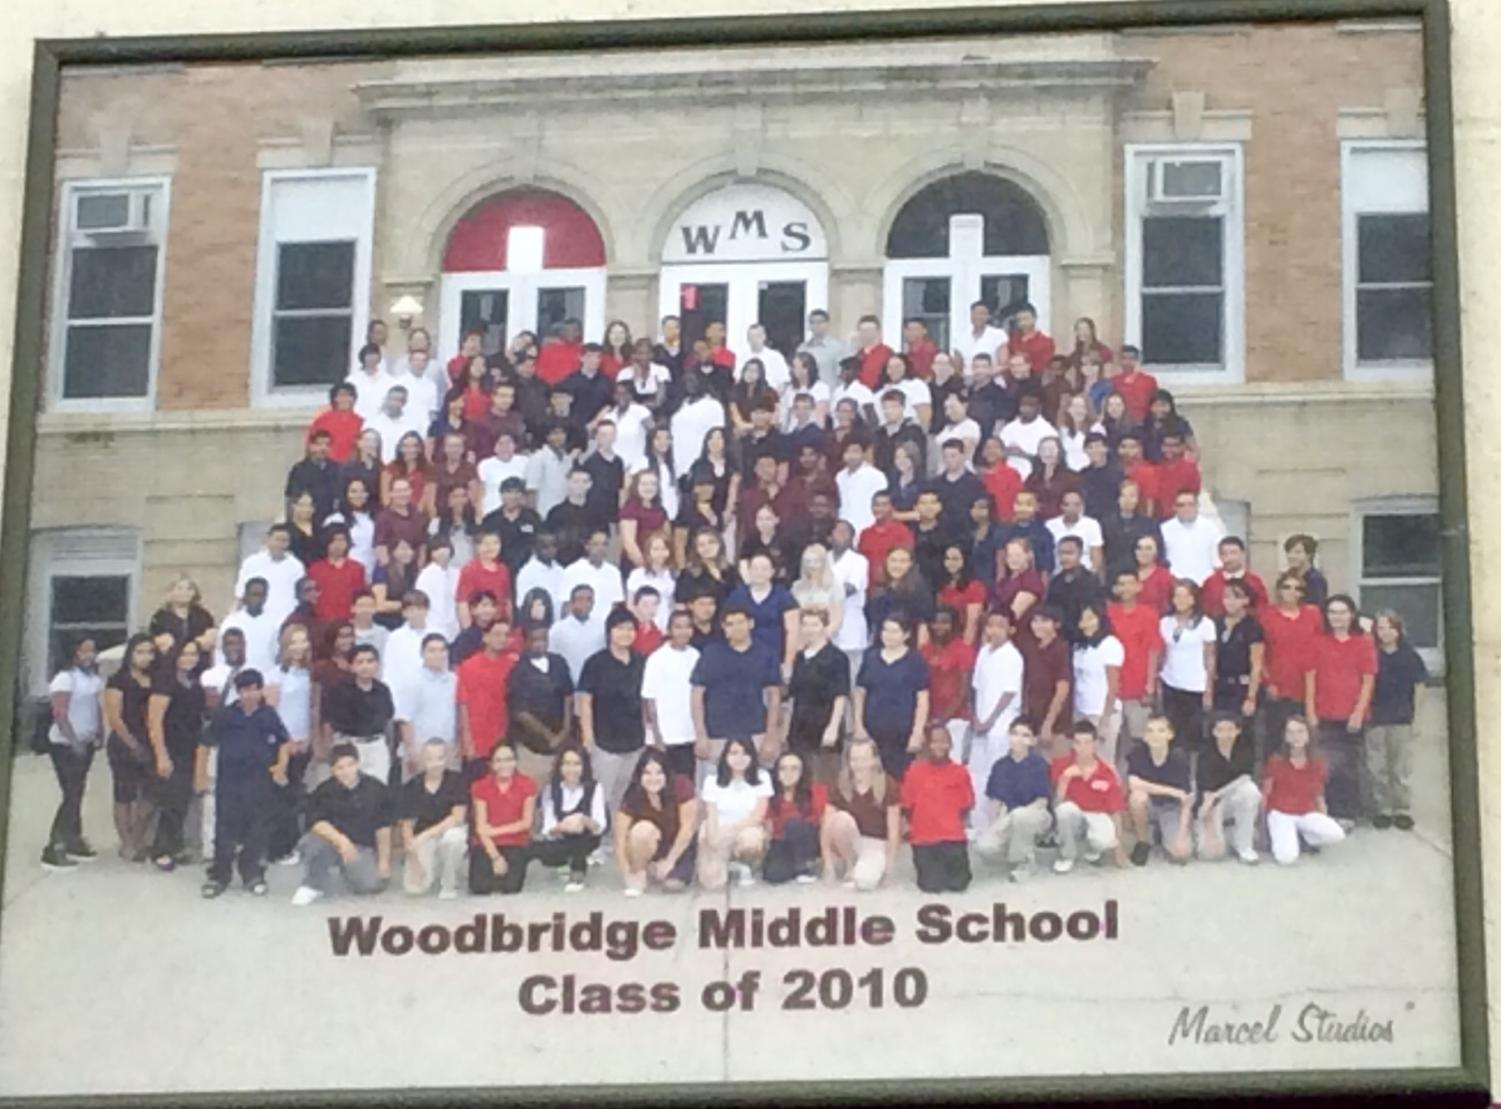 WMS class of 2010 in their school uniforms.